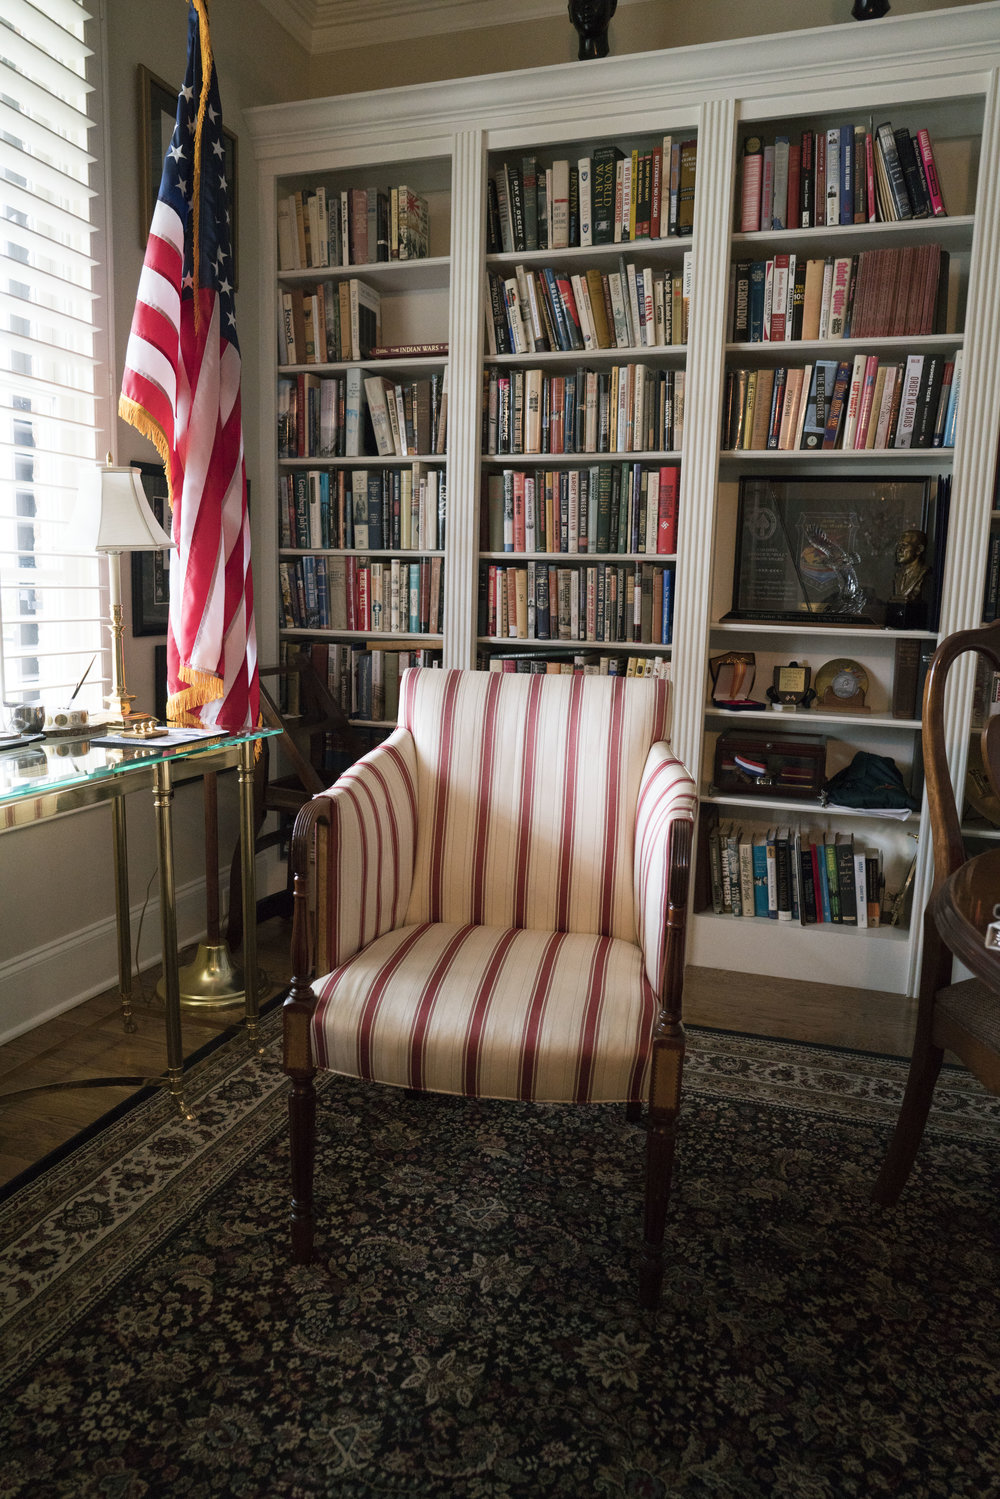 We feel like this chair is the best candidate. It's stately, solid, comfortable and tight enough to allow for minimal movement.The General's daughter thinks this is a good option and also said that, regardless of which chair we use, he will need a pillow.